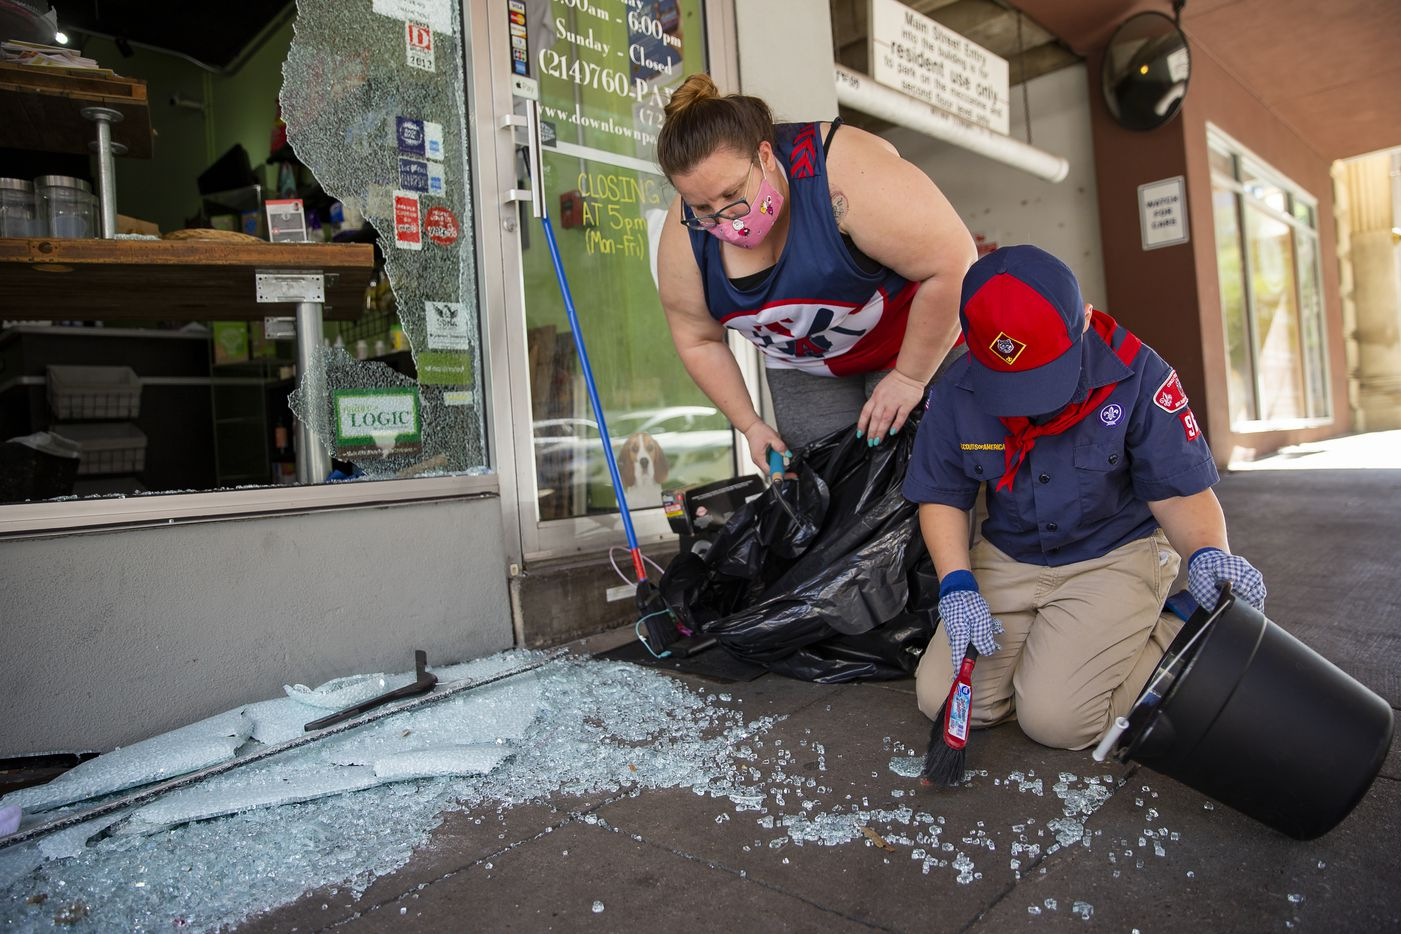 Julie Farmer from Seagoville, TX, and her son Kinsler Farmer, 7, volunteer to clean up after it was hit during last night's protest on Saturday morning, May 30, 2020 in Downtown Dallas. Farmer said she wants to teach youth what it means to come and be a community.